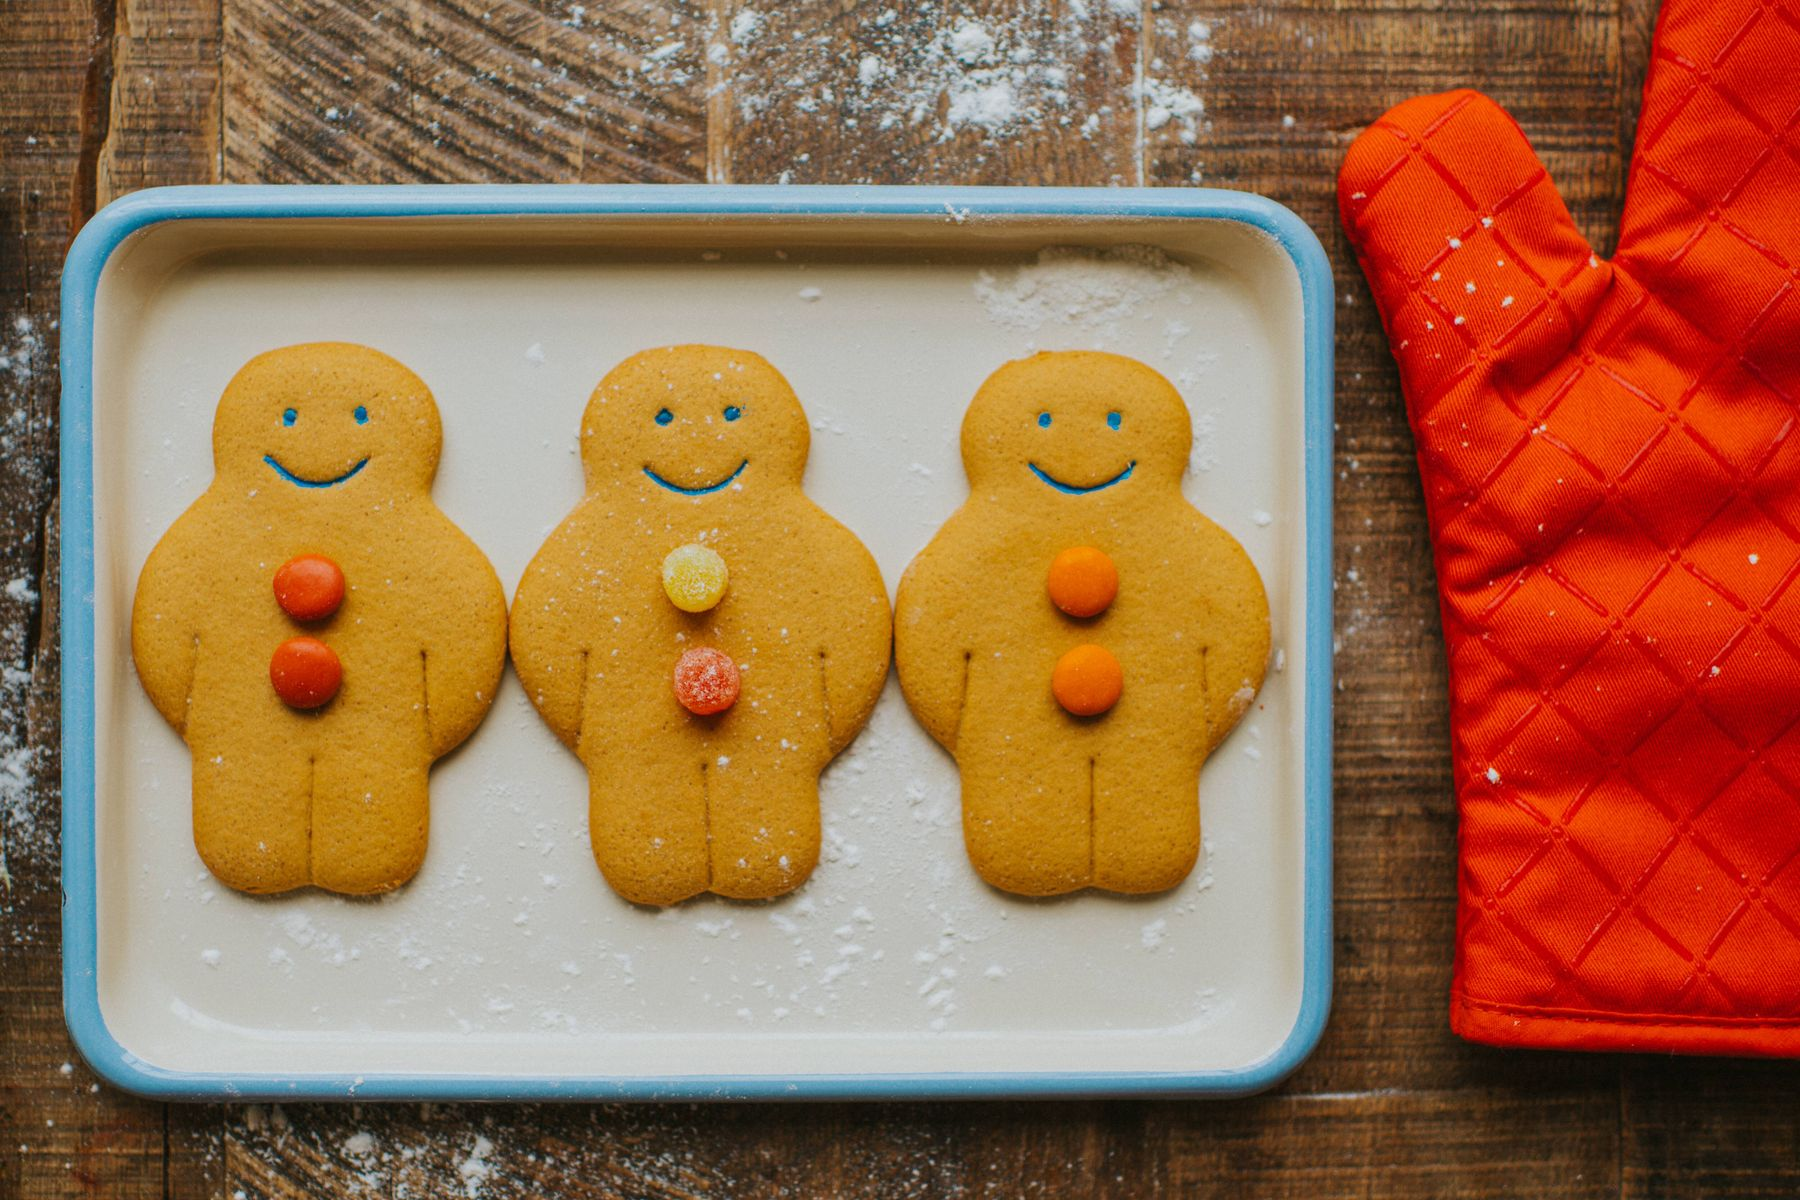 gingerbread men hot from oven